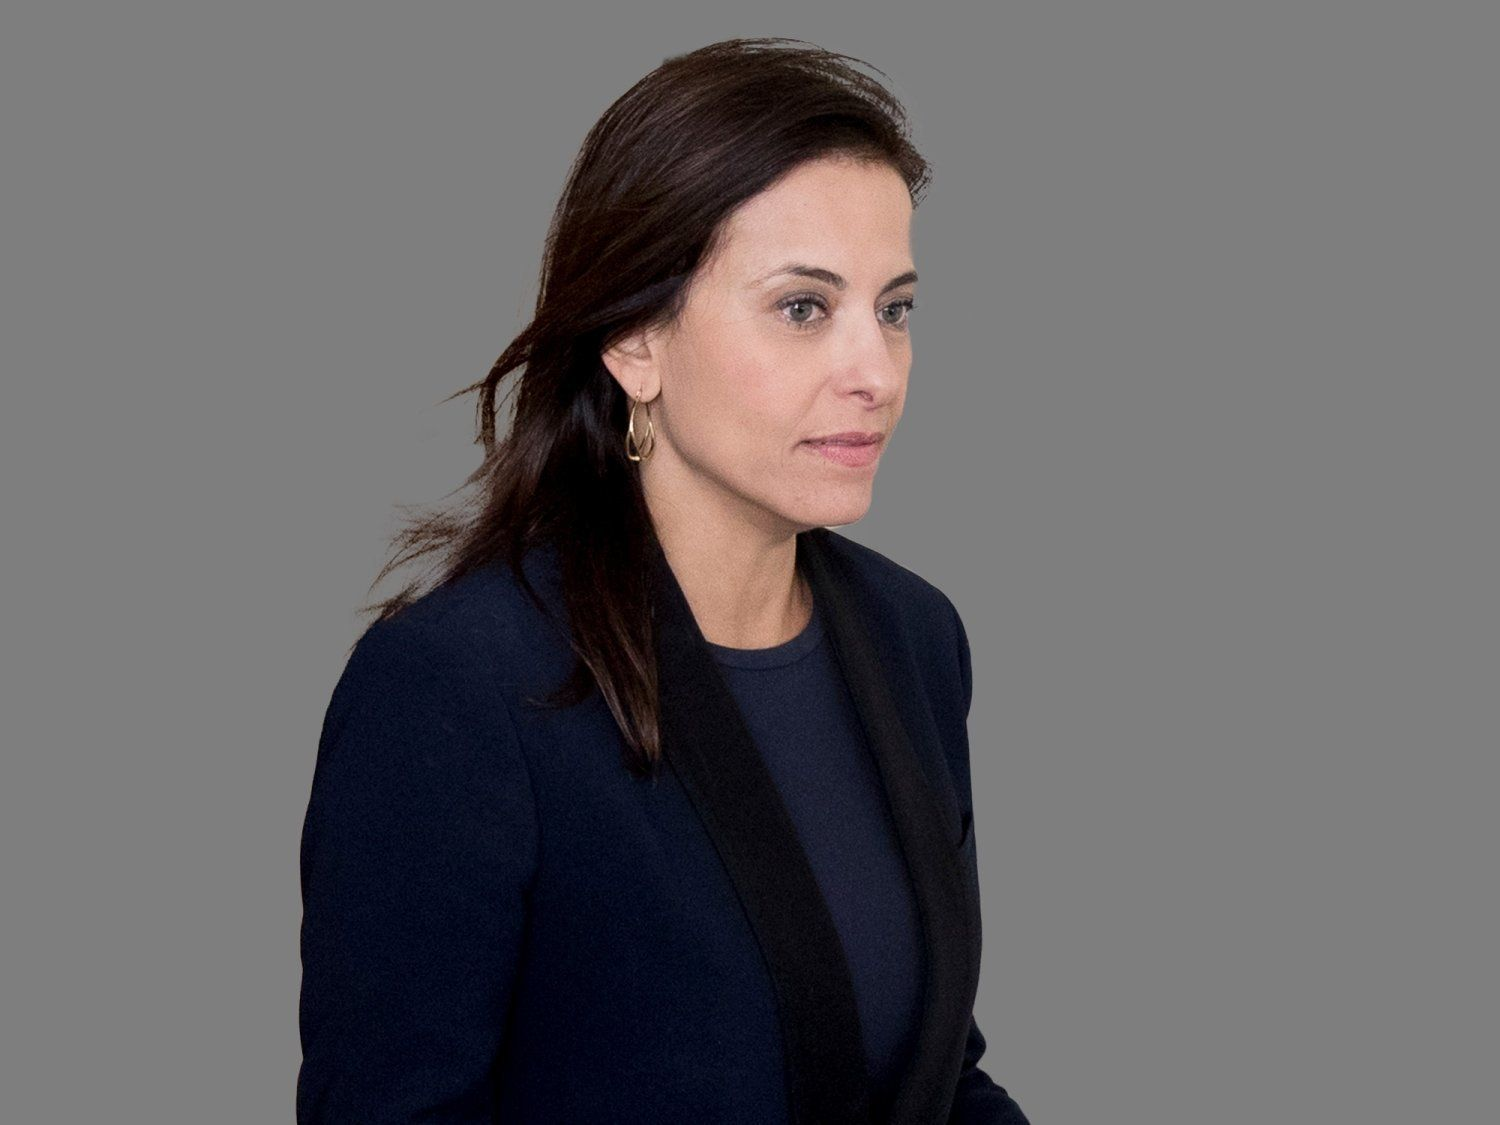 Dina Powell headshot, as White House deputy national security adviser, graphic element on gray